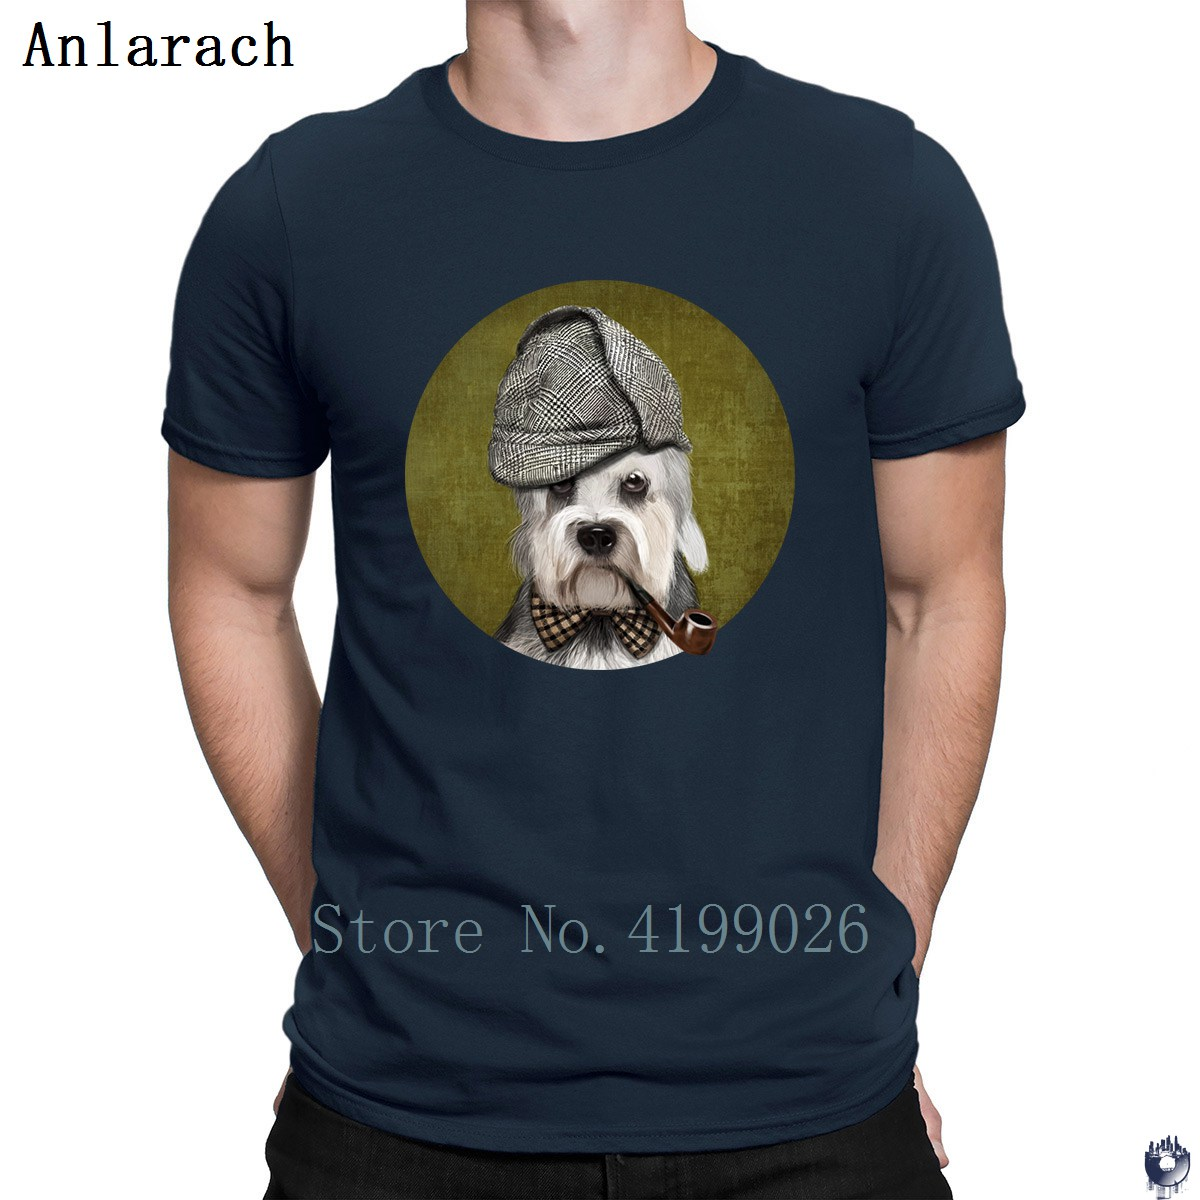 Dandie Dinmont Terrier tshirt Better Tee top Interesting Trend t shirt for men big sizes Knitted male Spring